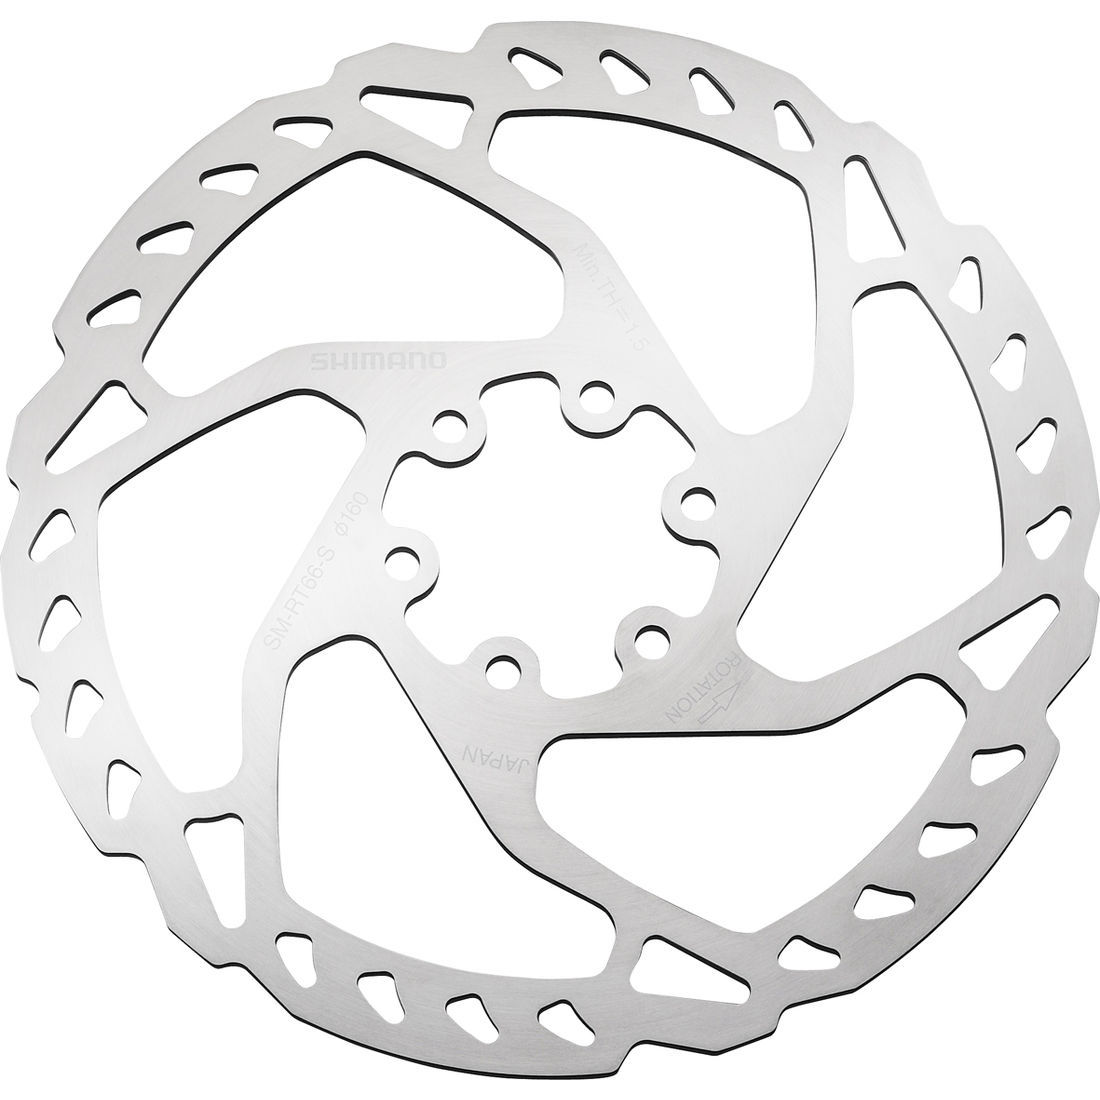 Shimano SLX/Zee RT66 6-Bolt Disc Brake Rotor